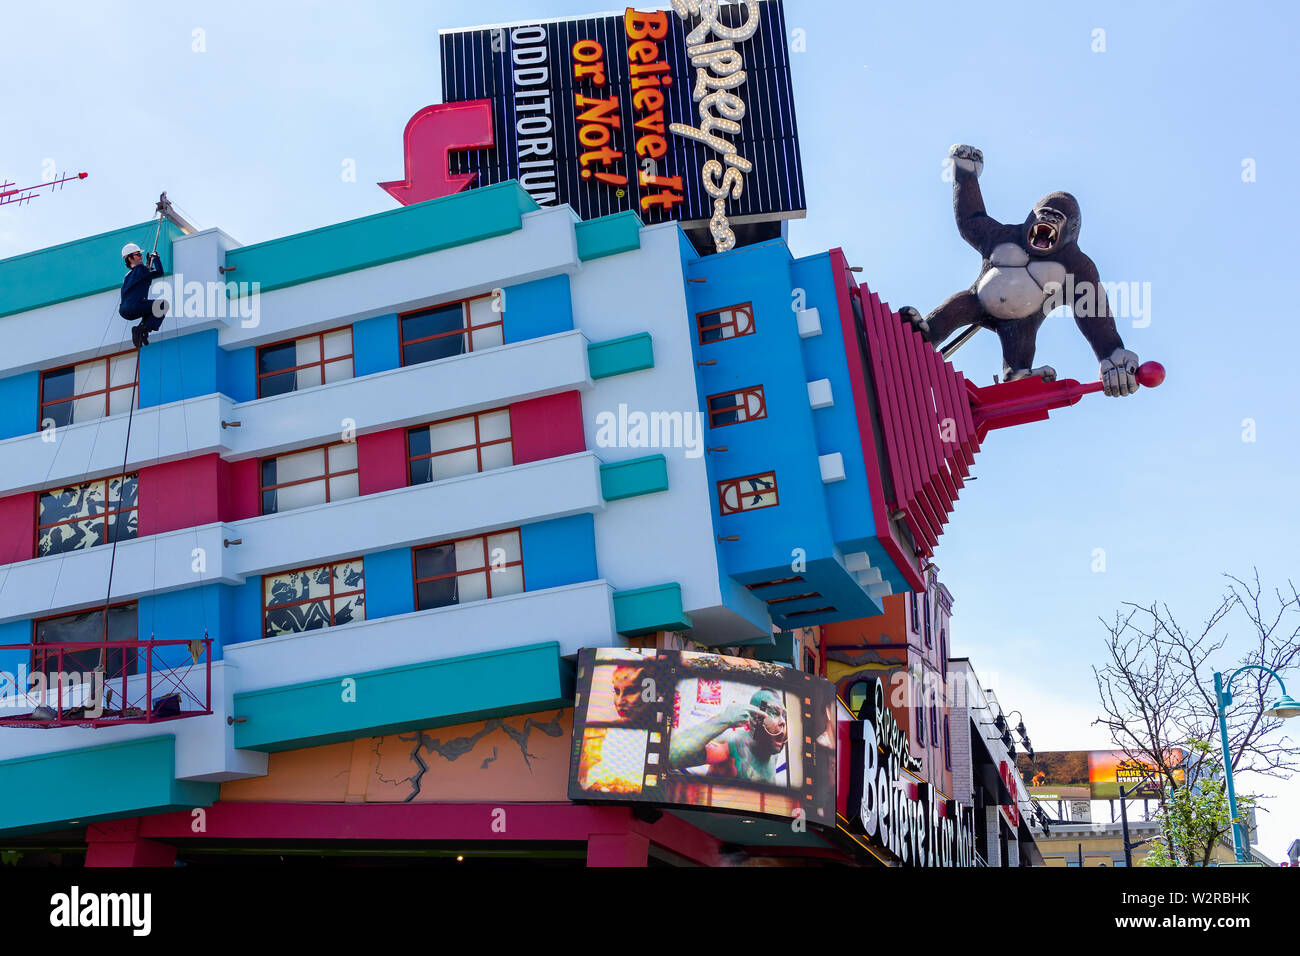 Niagara Falls, Canada - June 15, 2018: View of Clifton Hill, known as the ' Street of Fun', one of the major tourist promenades in Niagara Falls. - Stock Image